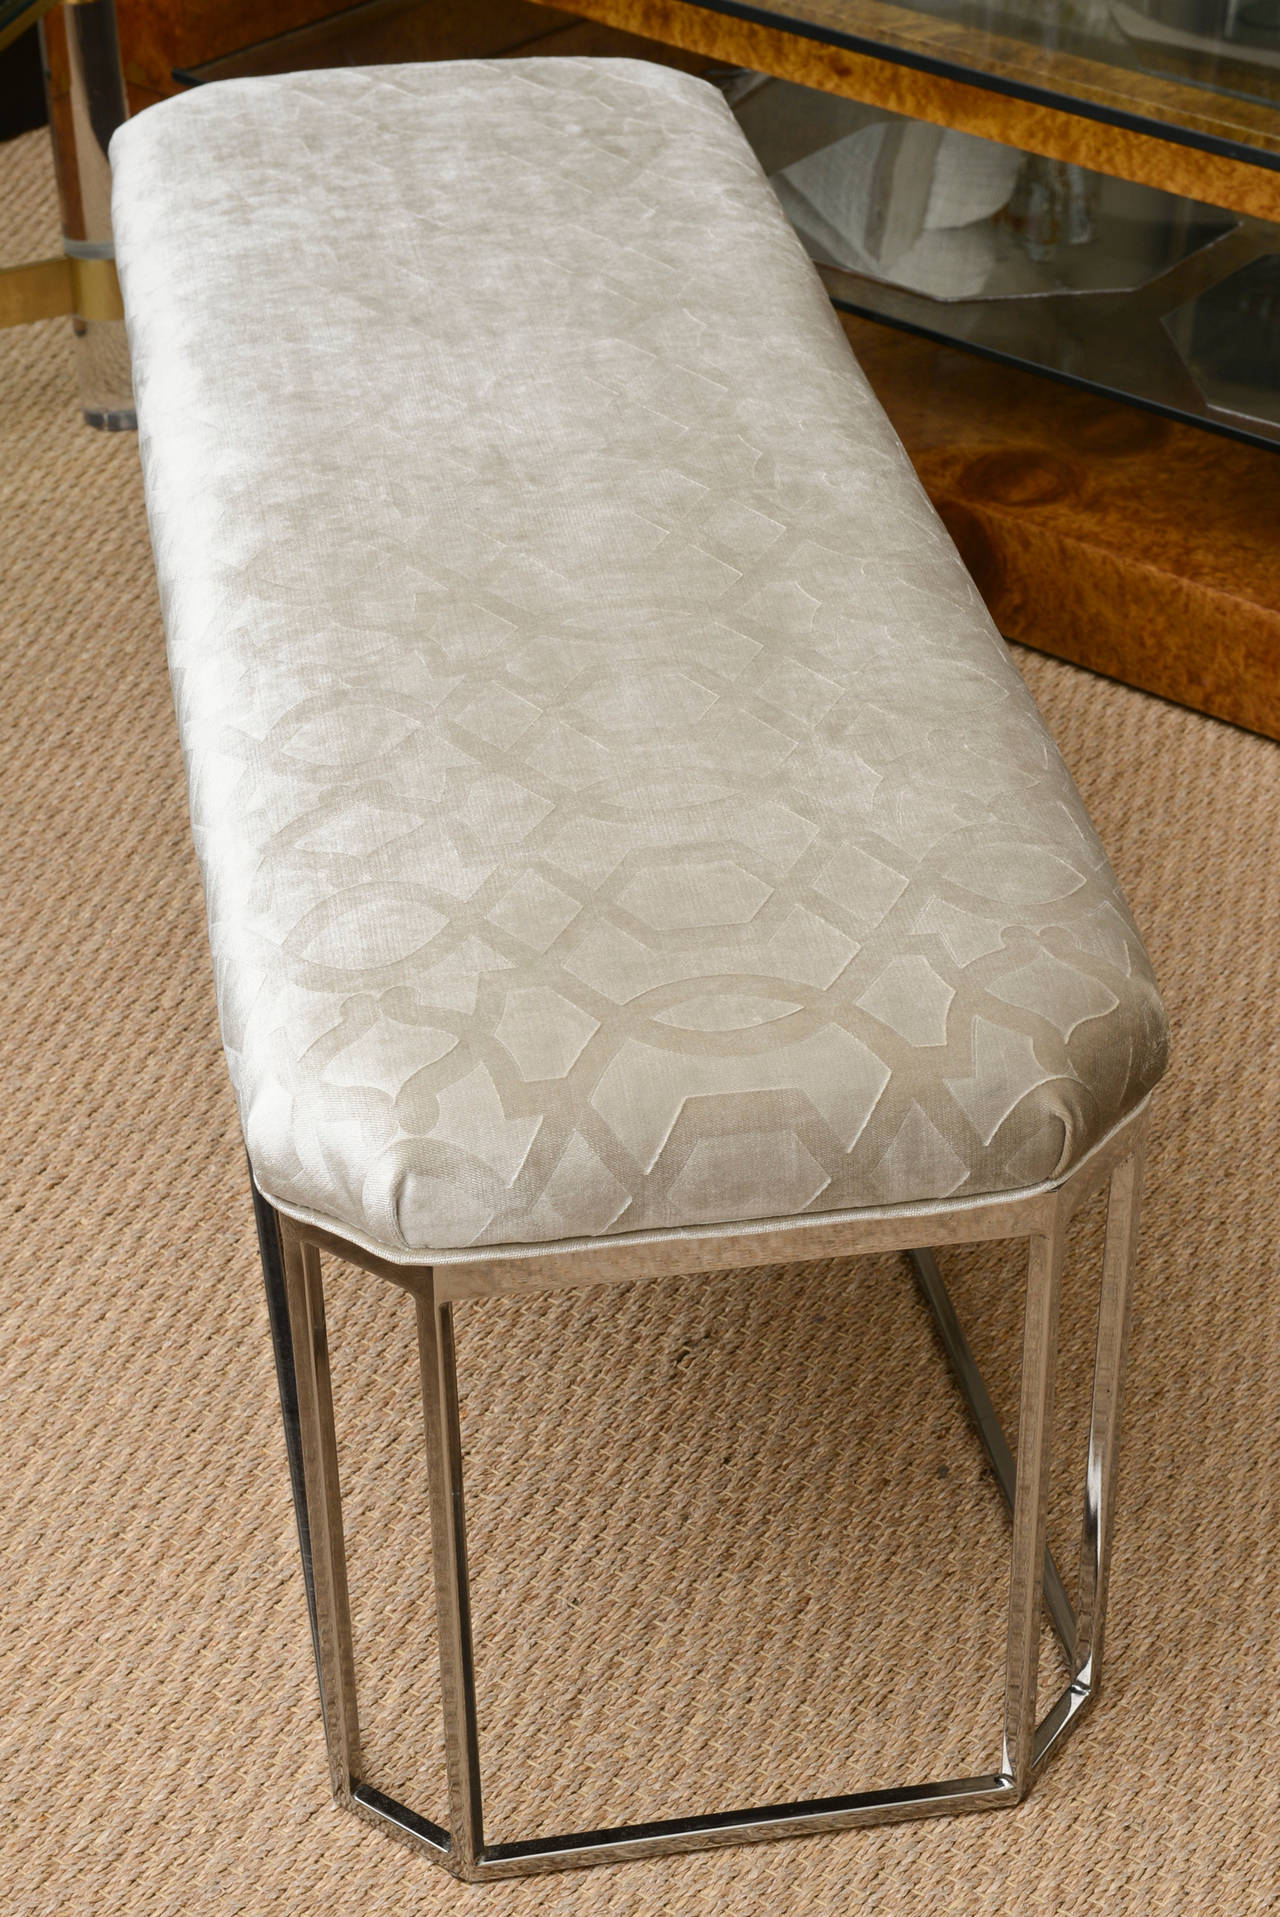 Late 20th Century Milo Baughman Vintage Hexagonal Chrome and Newly Upholstered Bench  For Sale